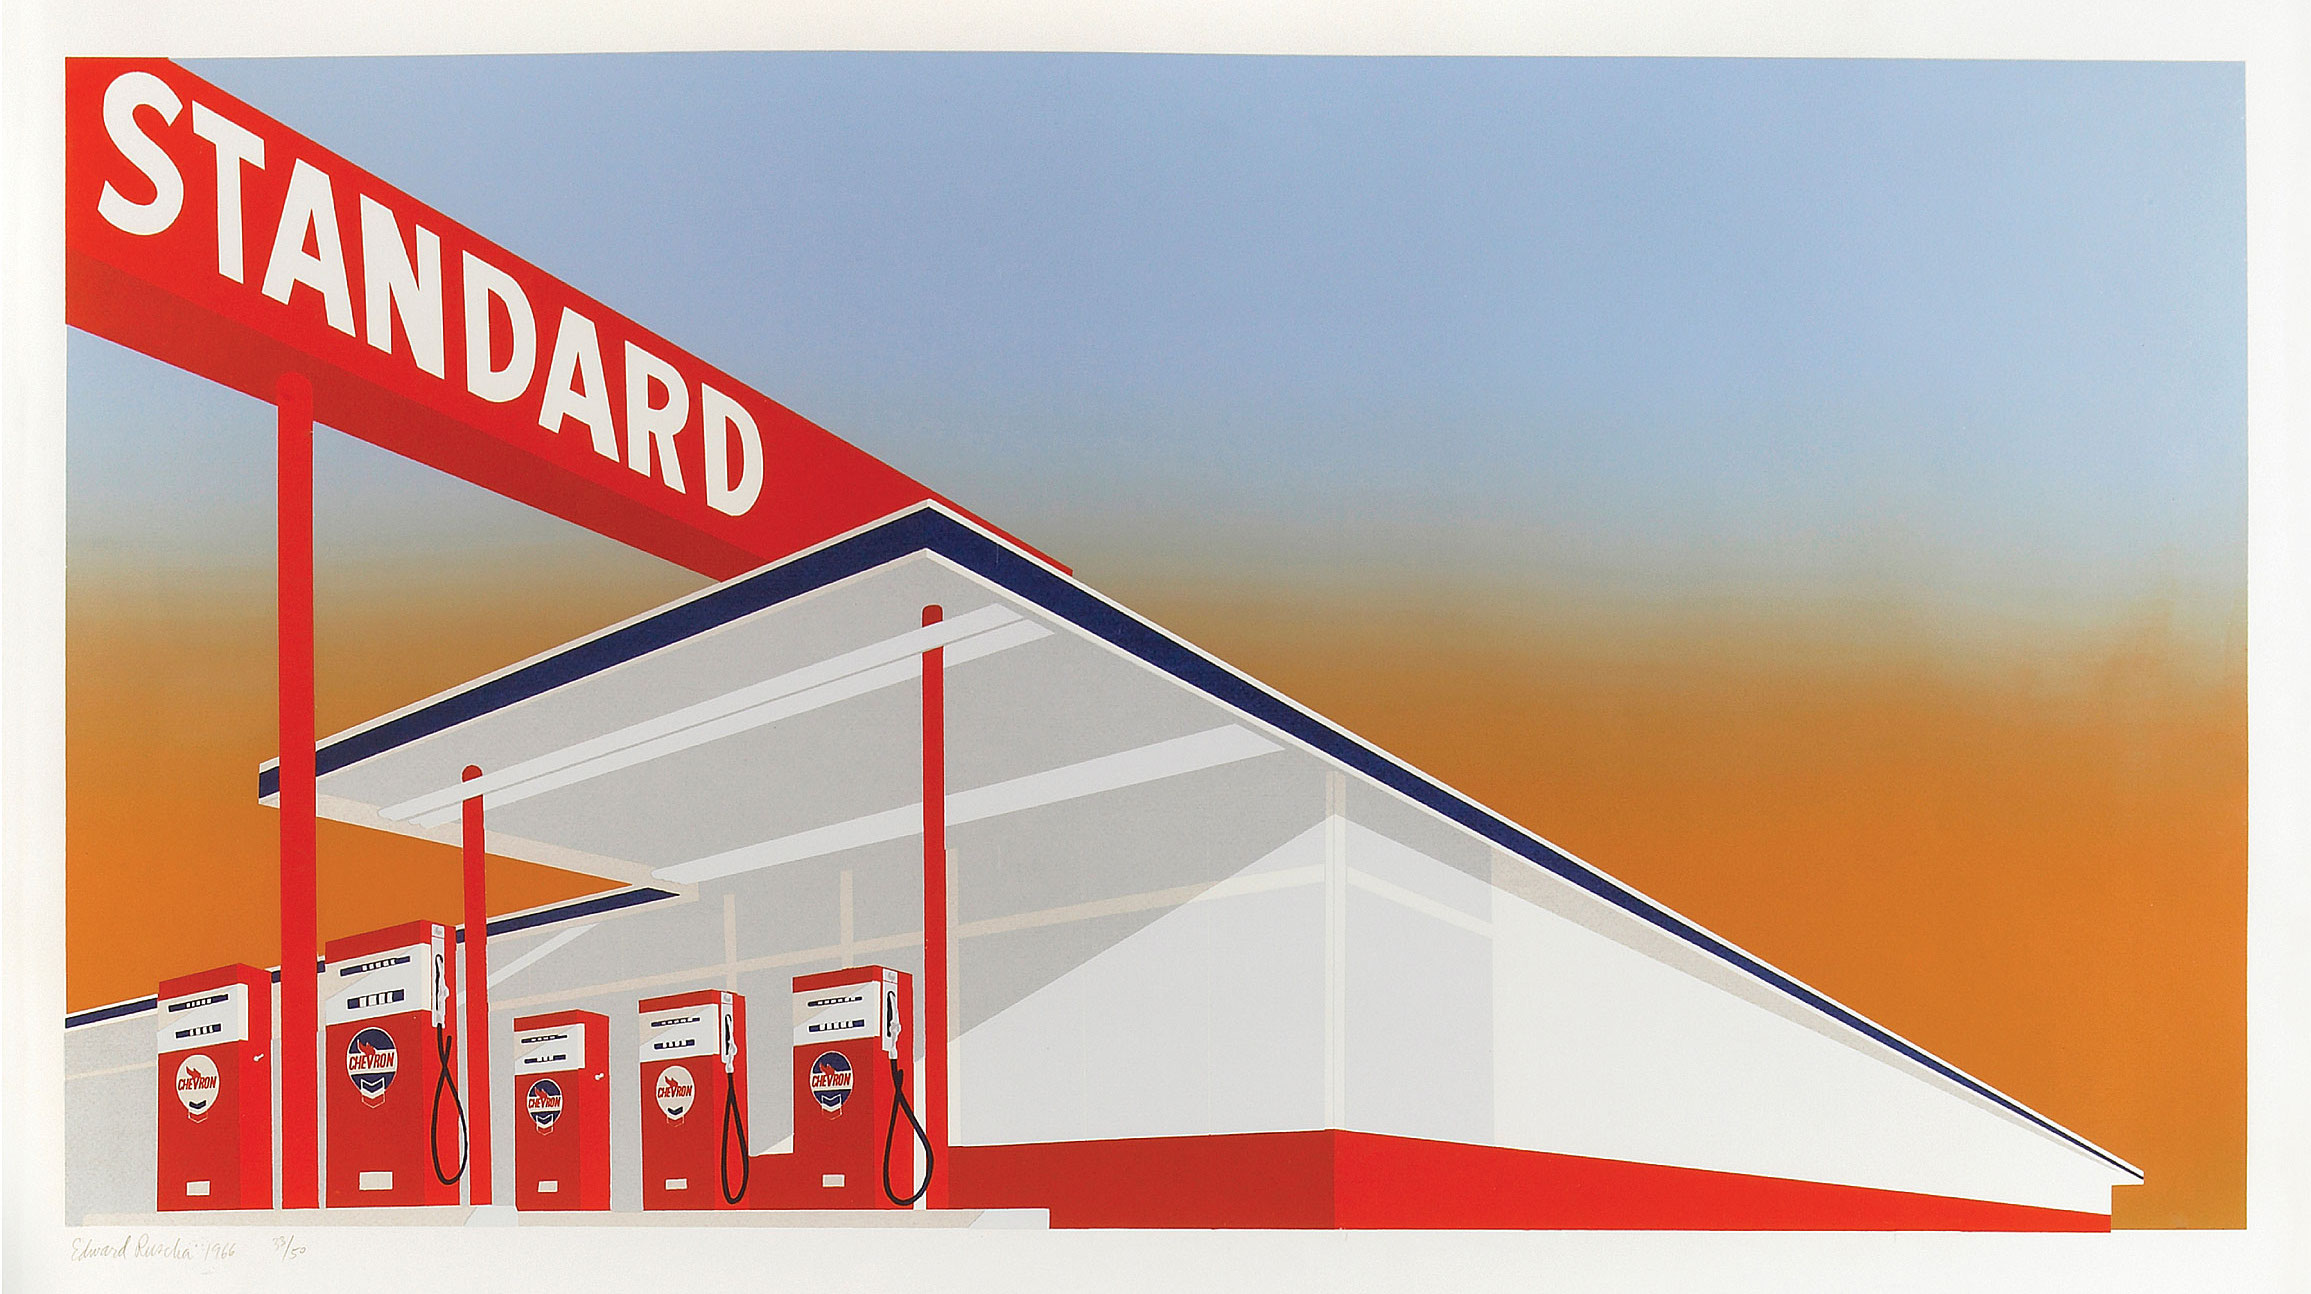 Ed Ruscha,  Standard Station , 1966, color screenprint, 25 5/8 × 40 inches (65.1 × 15.7 cm). Published by Audrey Sabol, Villanova, PA. Fine Arts Museums of San Francisco, Museum purchase, Mrs. Paul L. Wattis Fund, 2000.131.5.1 © Ed Ruscha